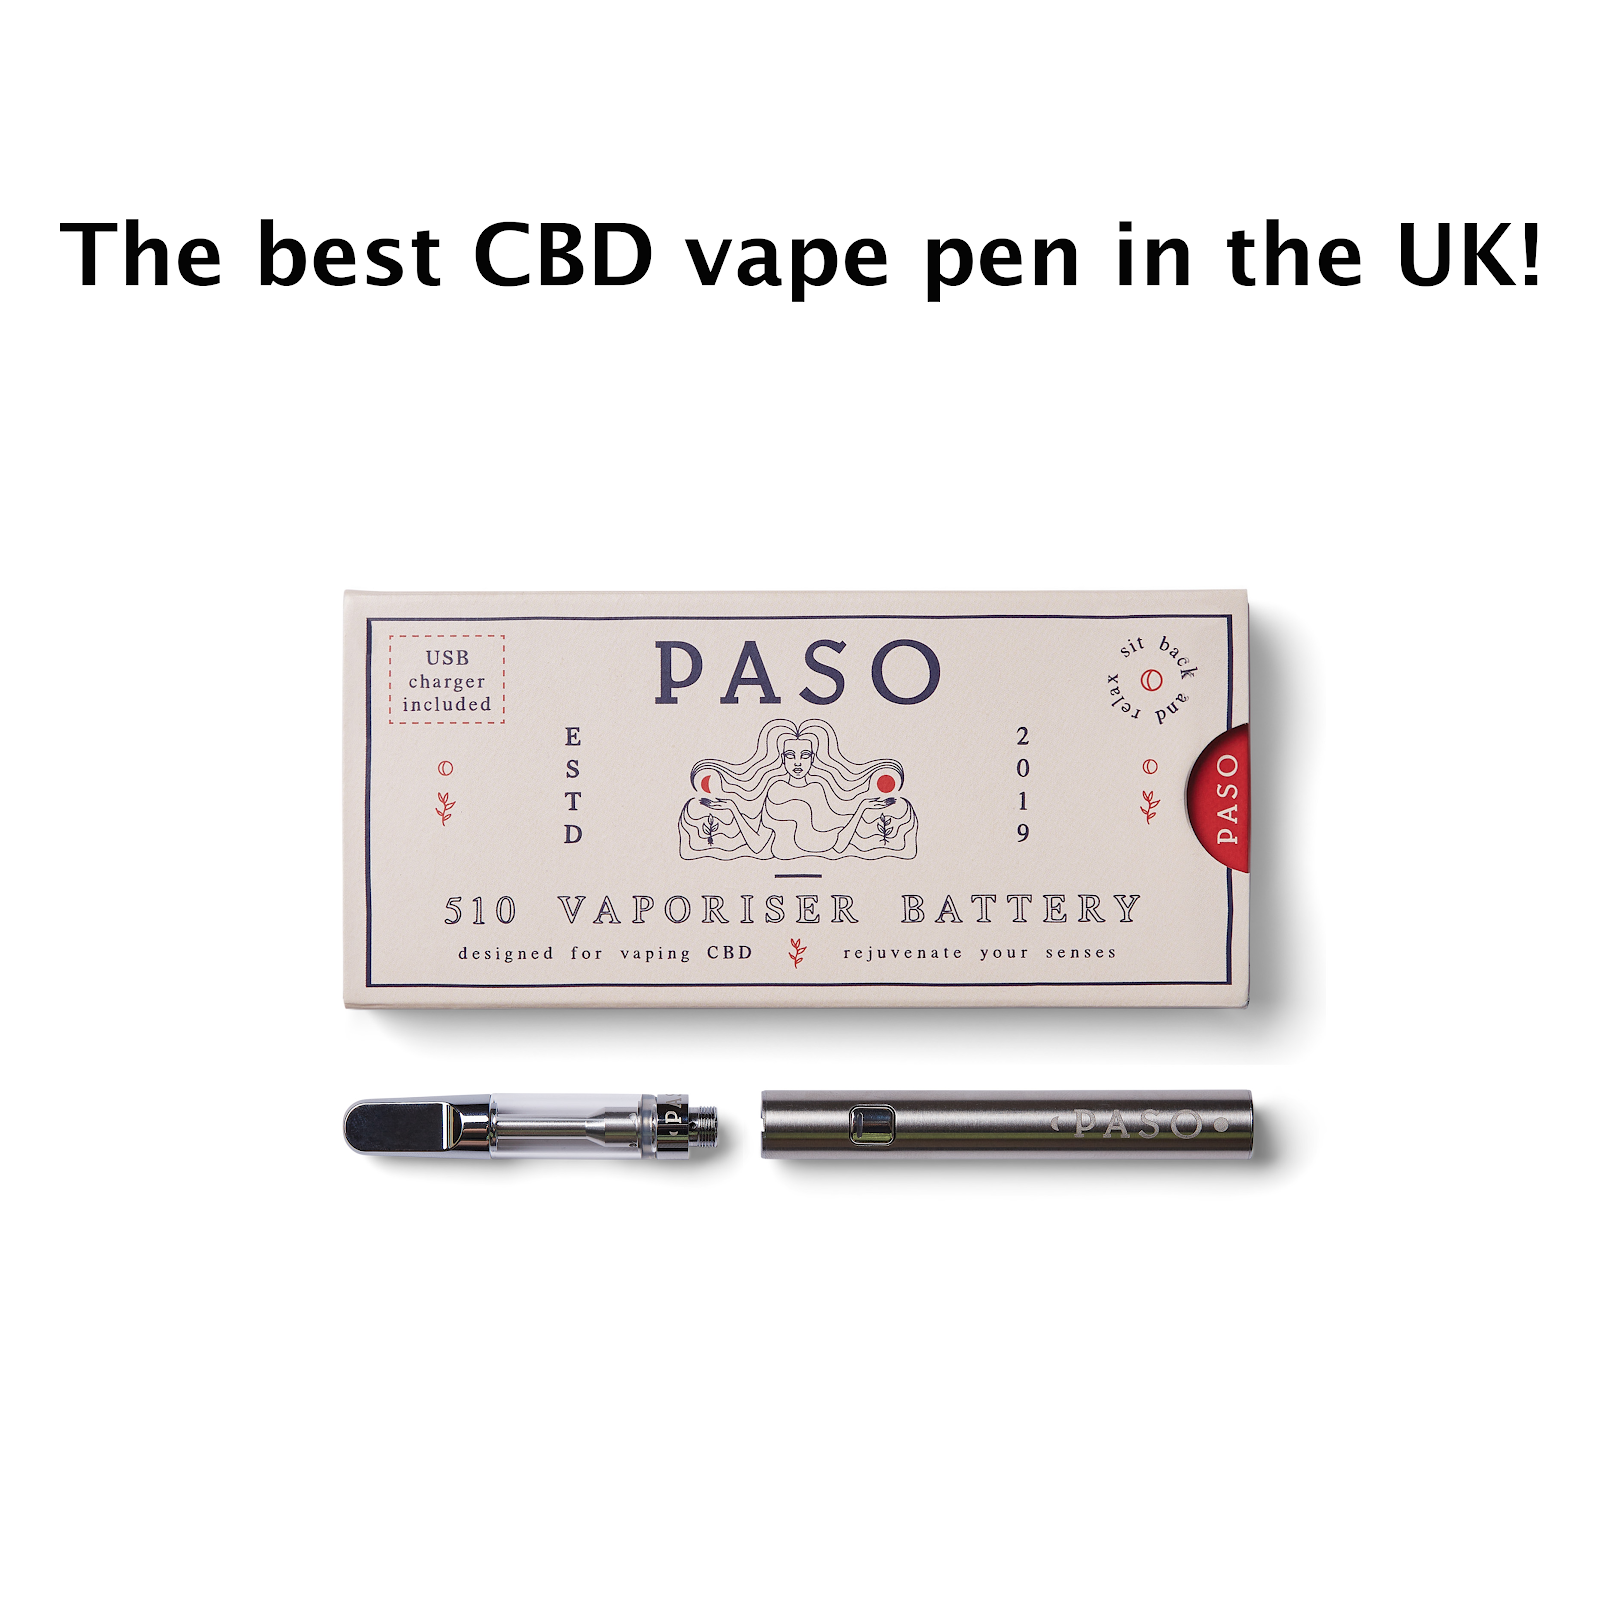 What do We Mean by a CBD Vape Pen in the UK?